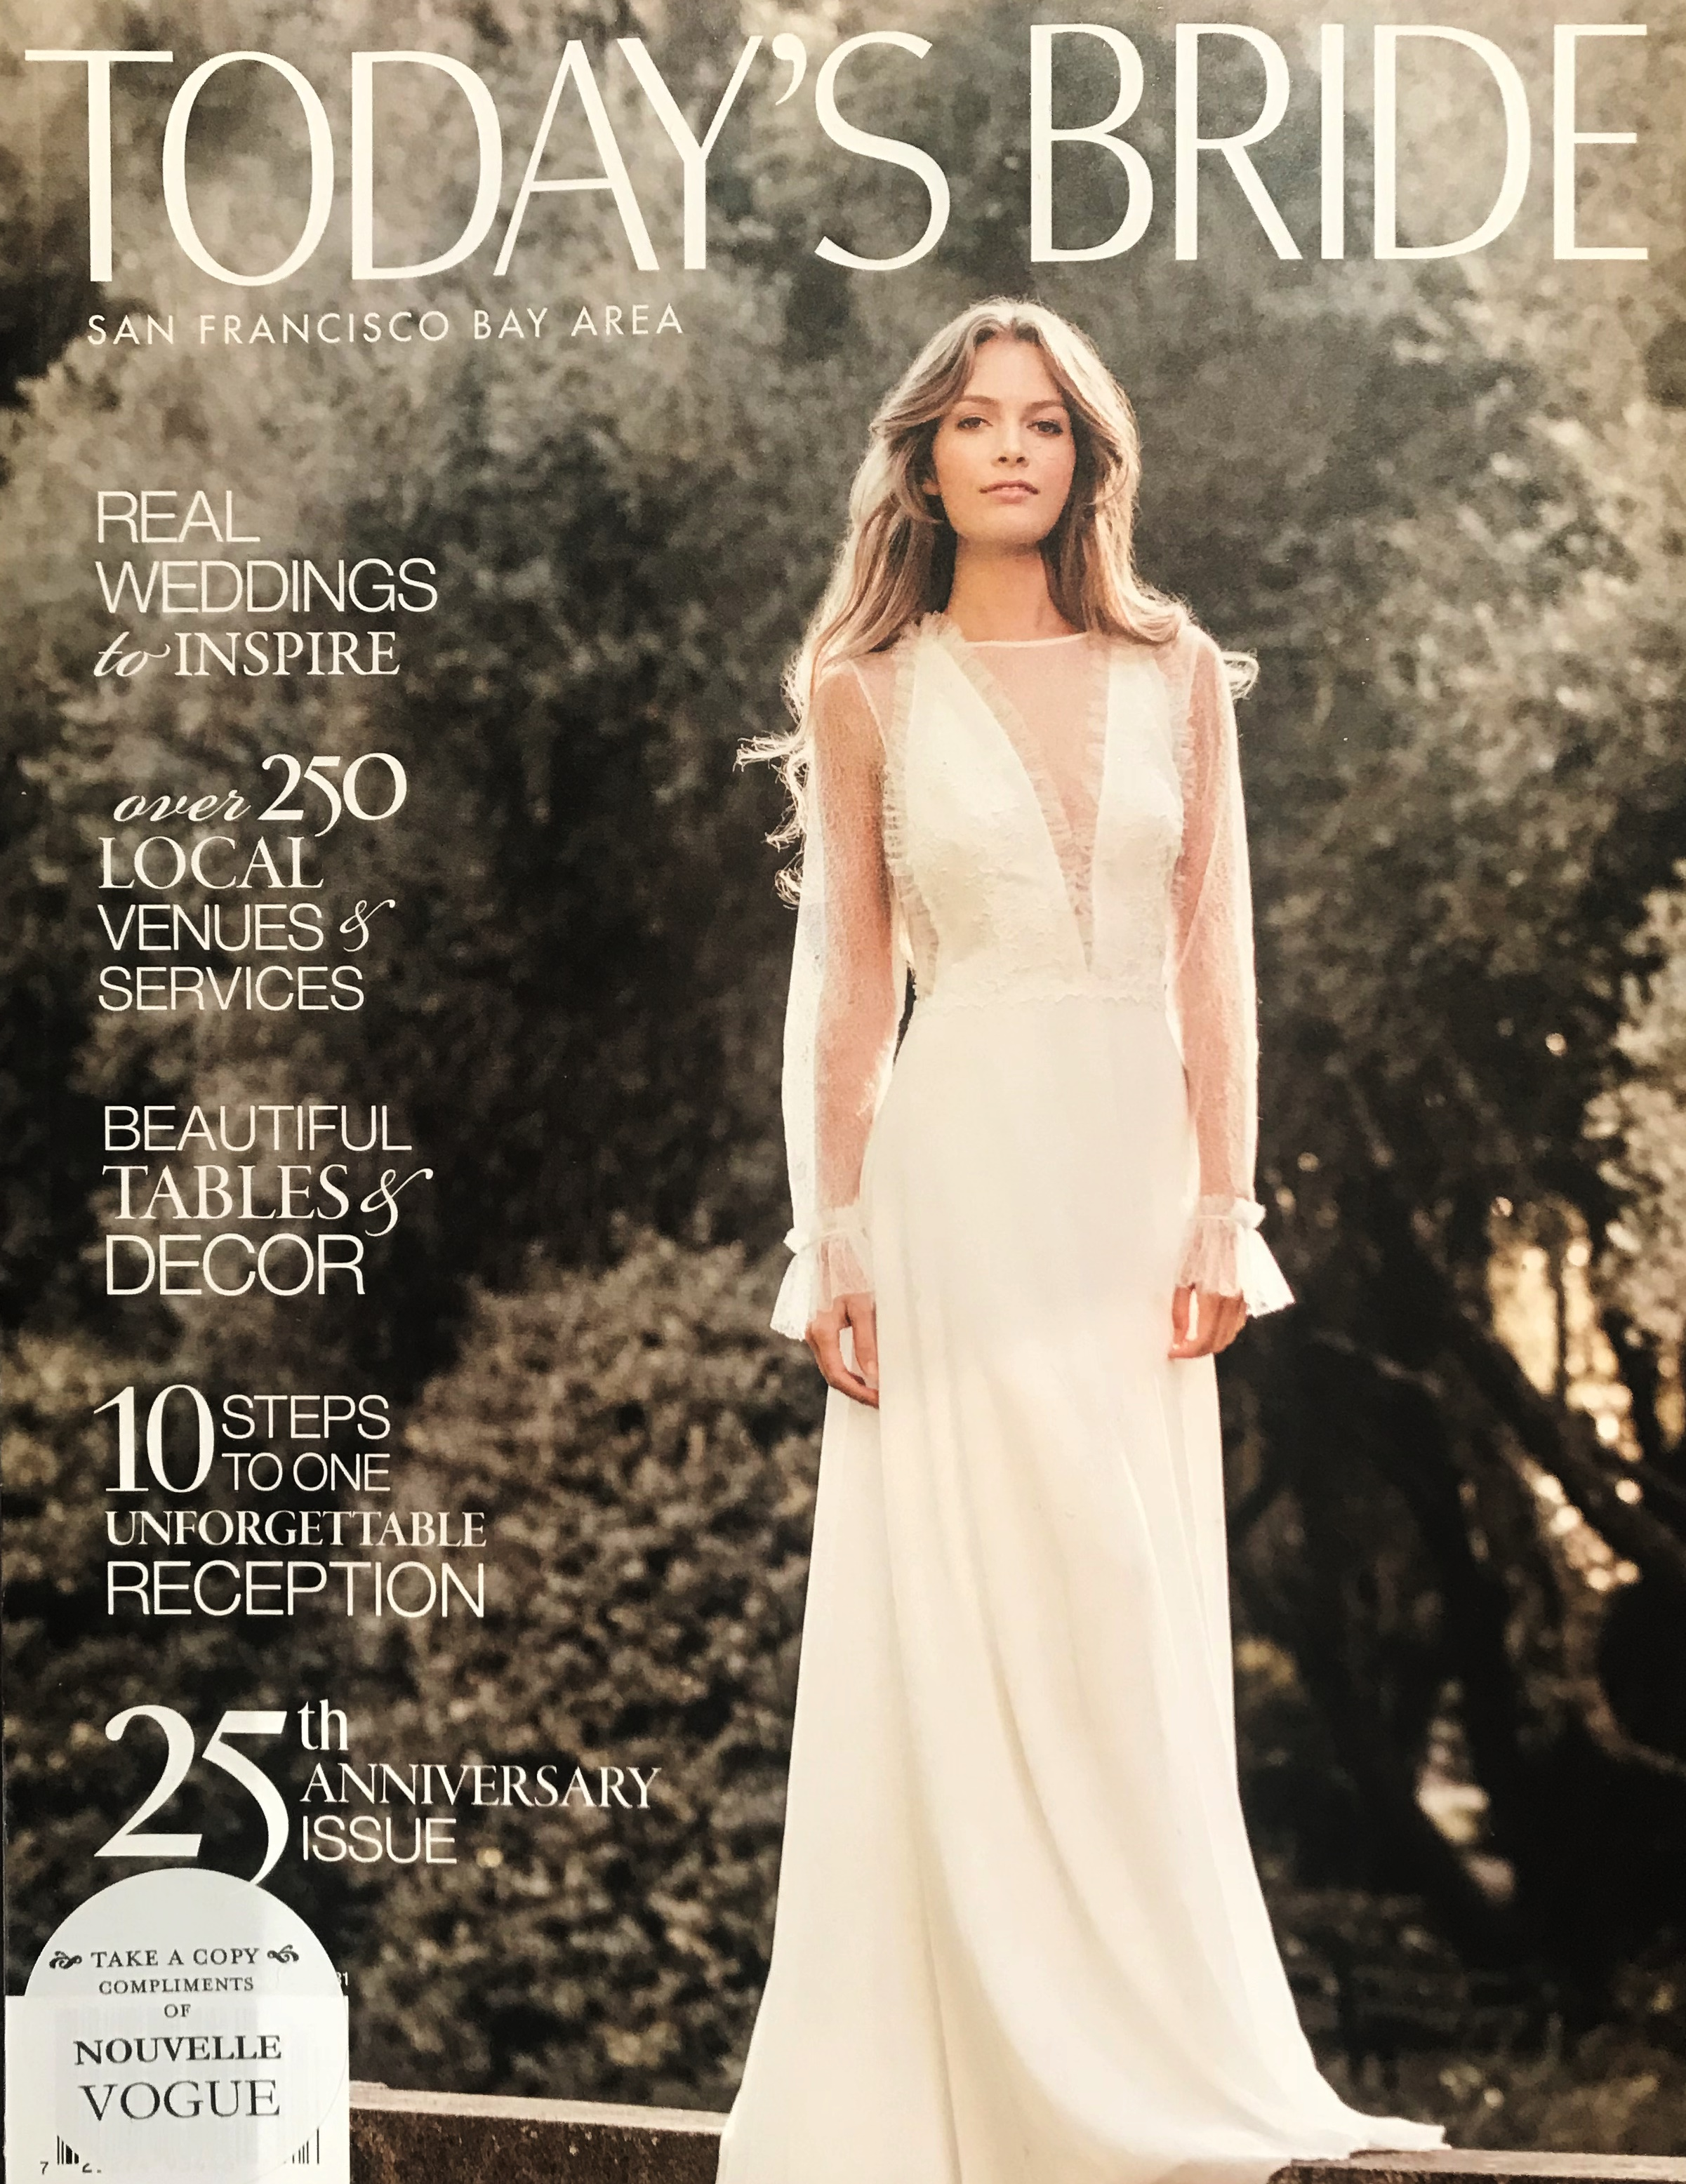 43762c21777 CLORITA WEDDING DRESS ON THE FRONT COVER OF TODAY S BRIDE MAGAZINE ...